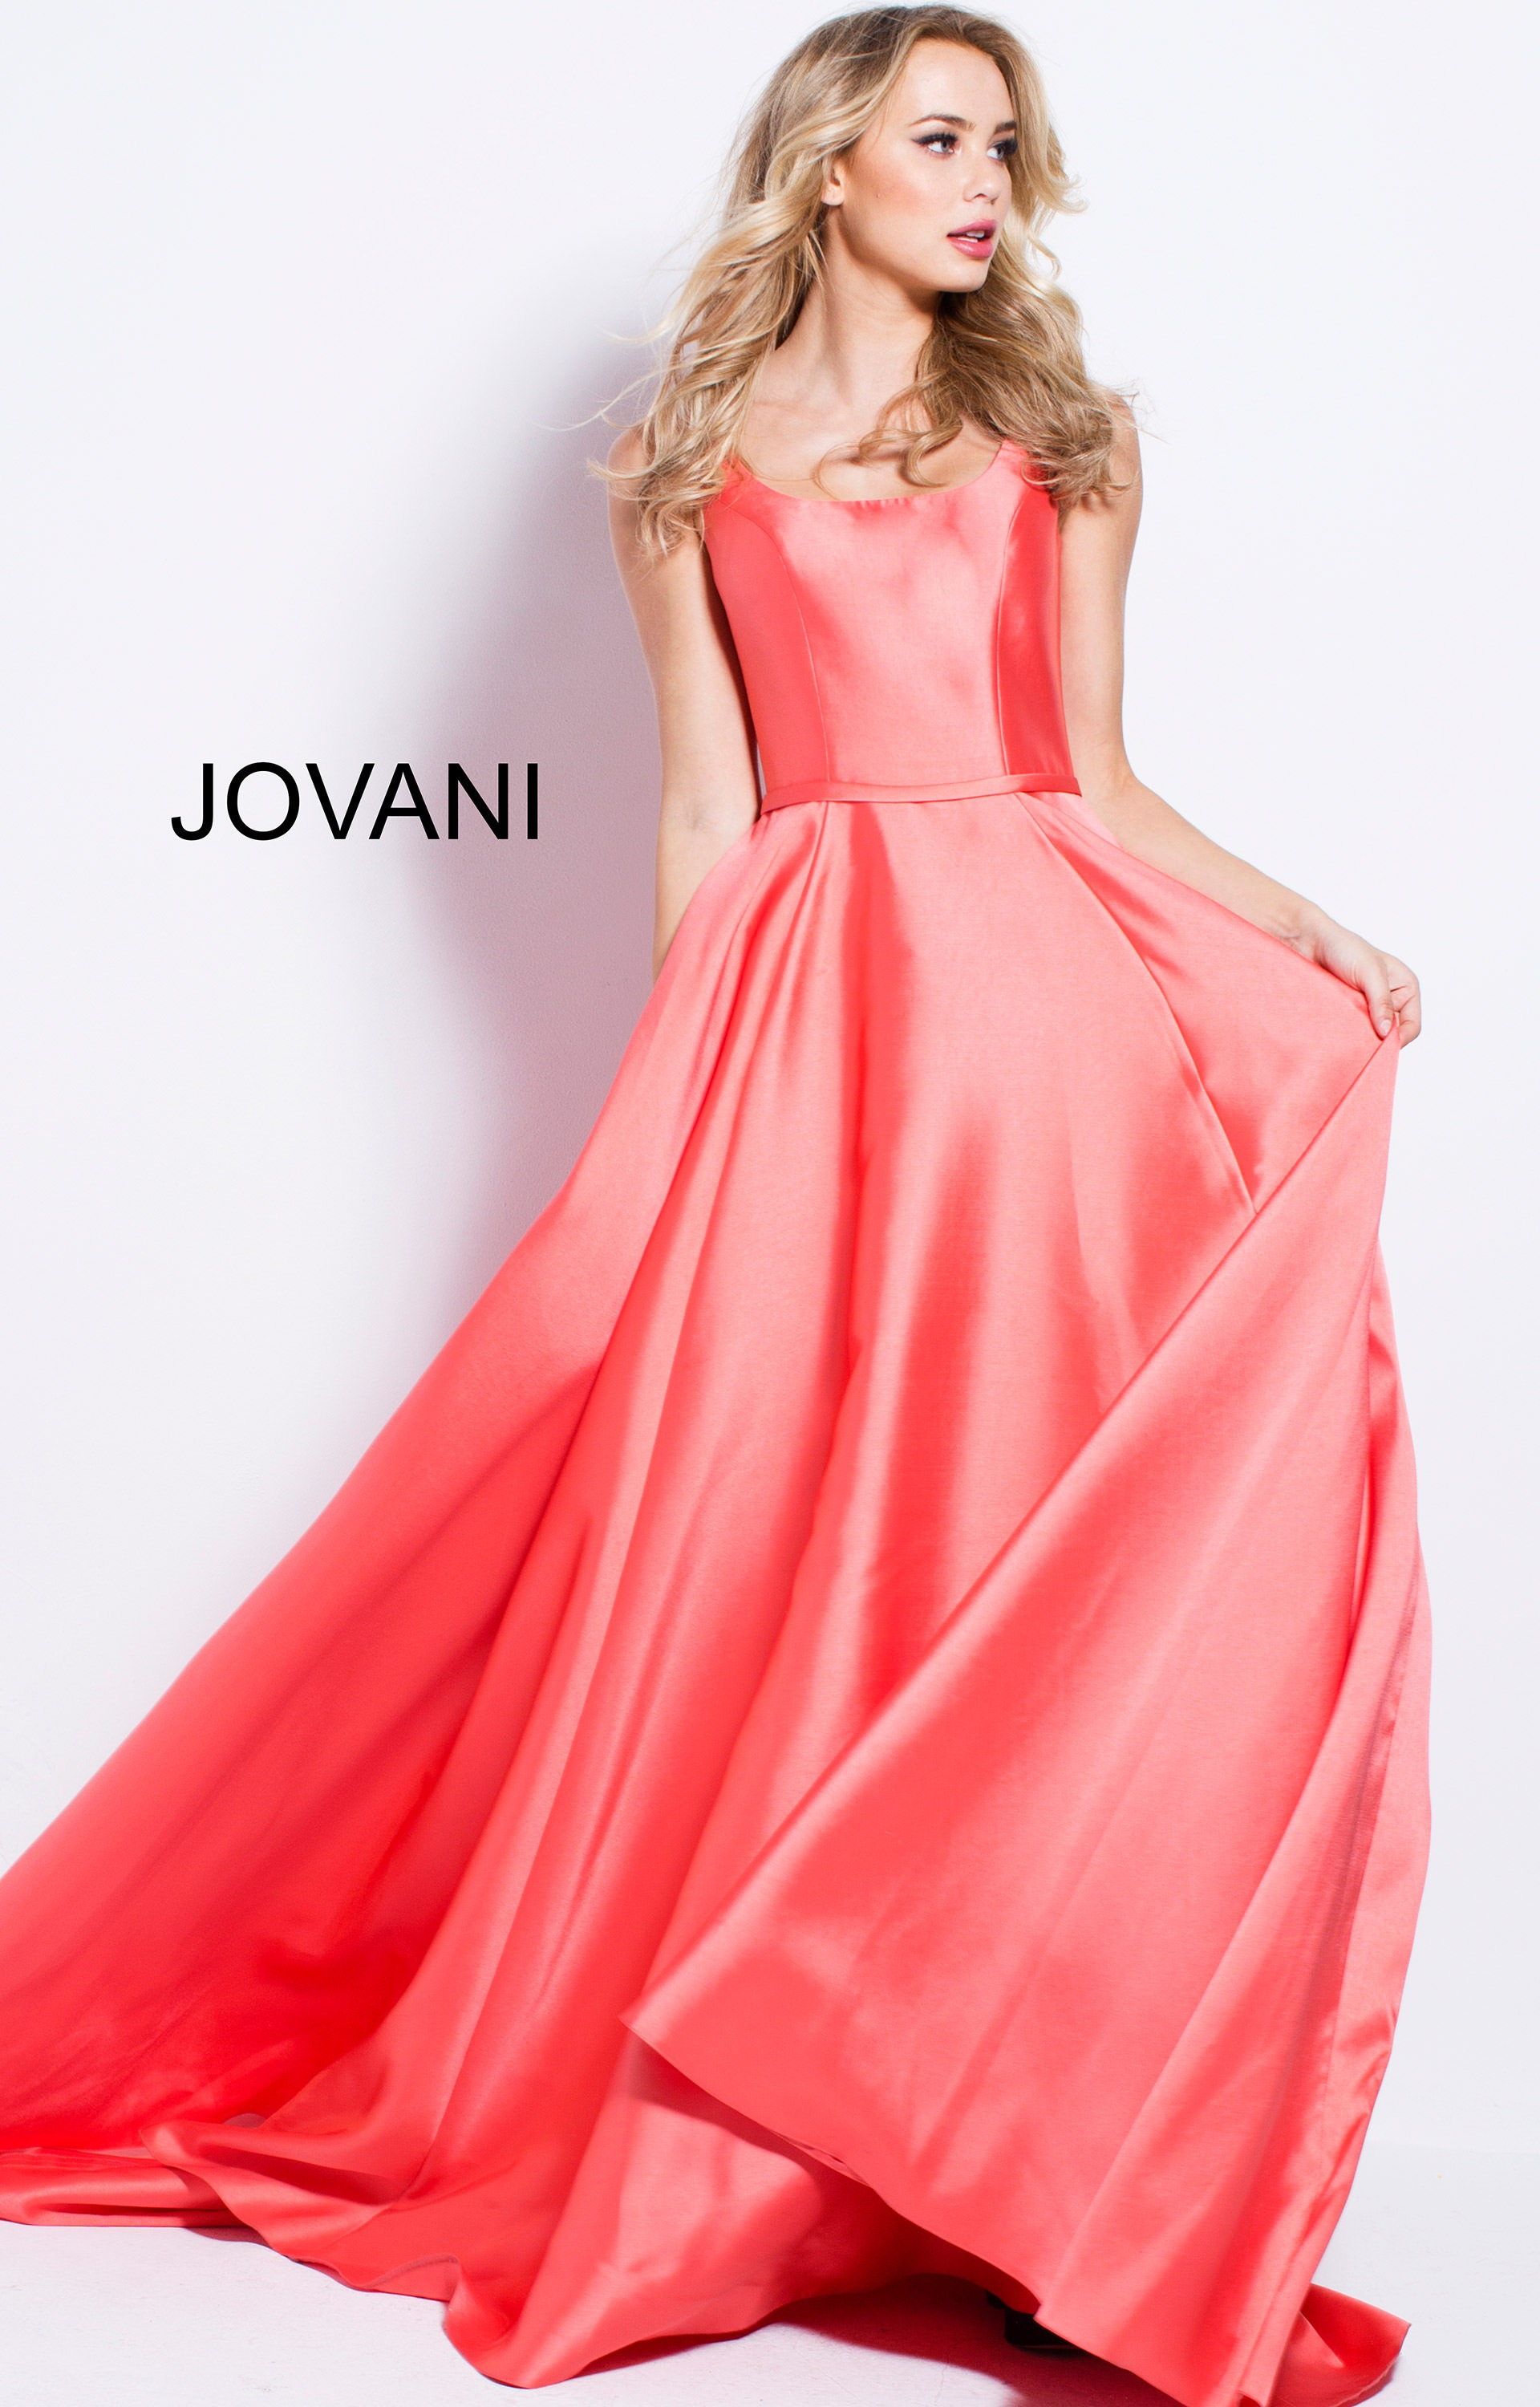 Jovani 57452 - Simple A Line Ball Gown Prom Dress